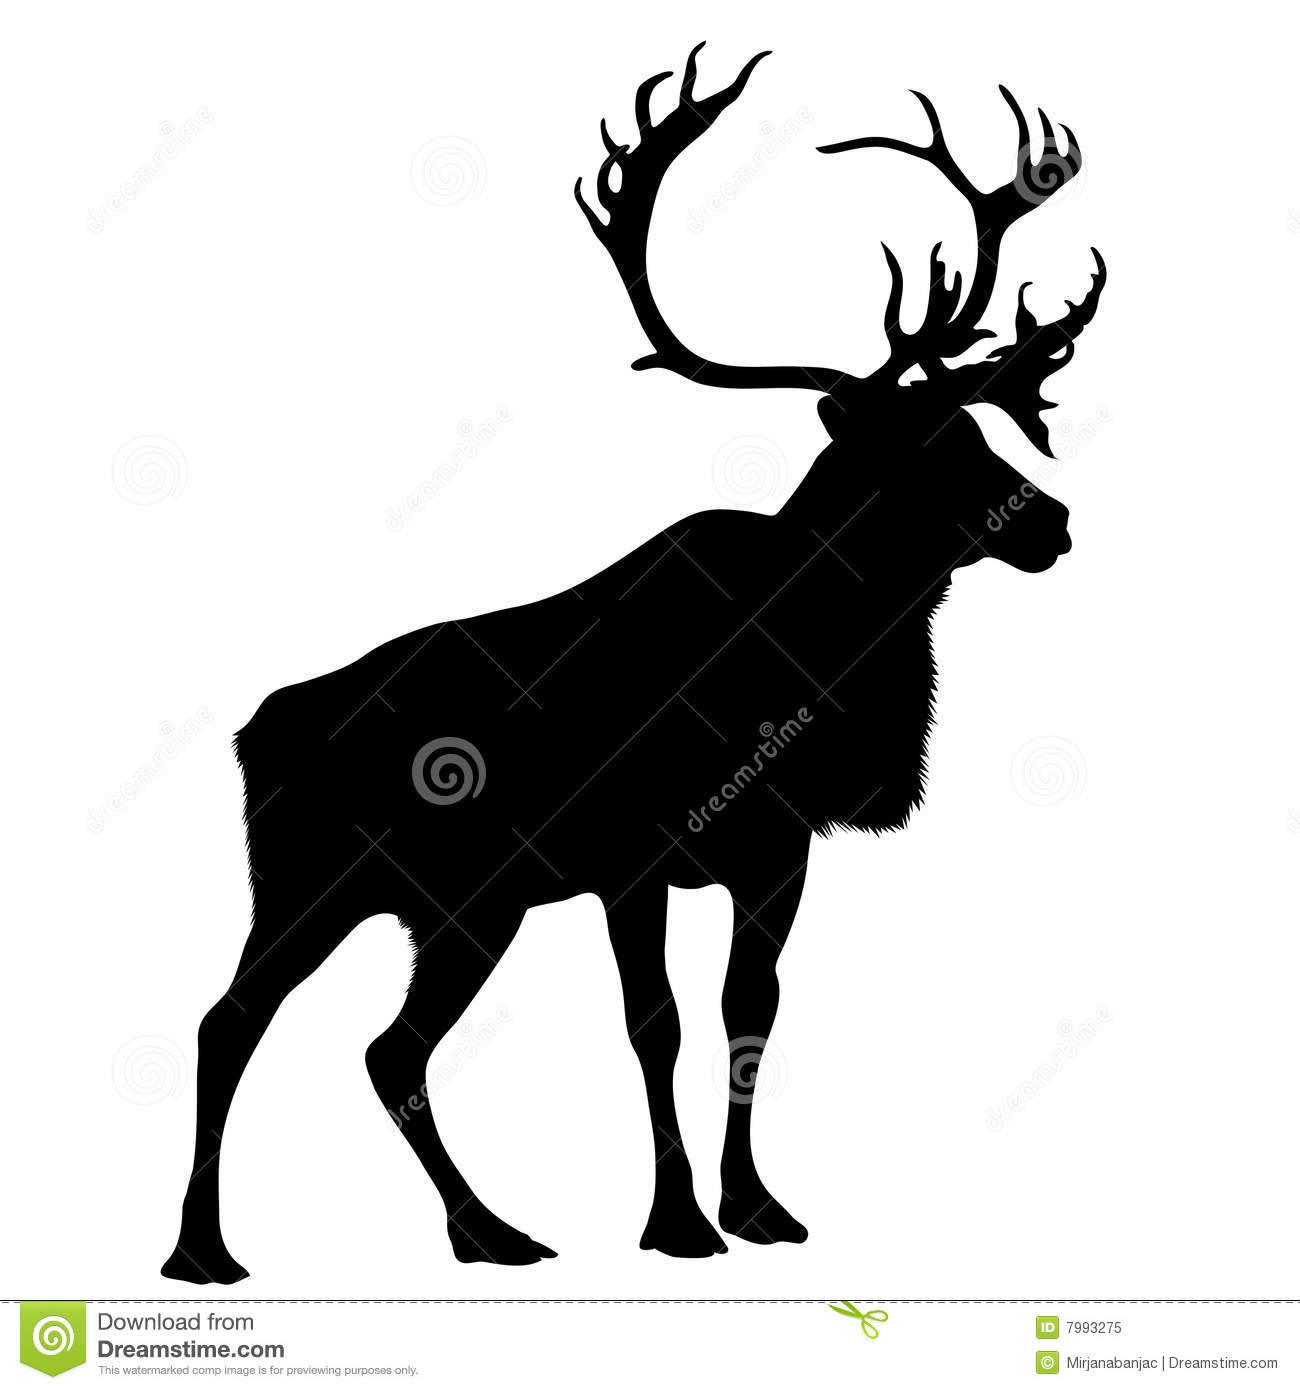 stag silhouette black silhouette stag stock vector illustration of elch stag silhouette